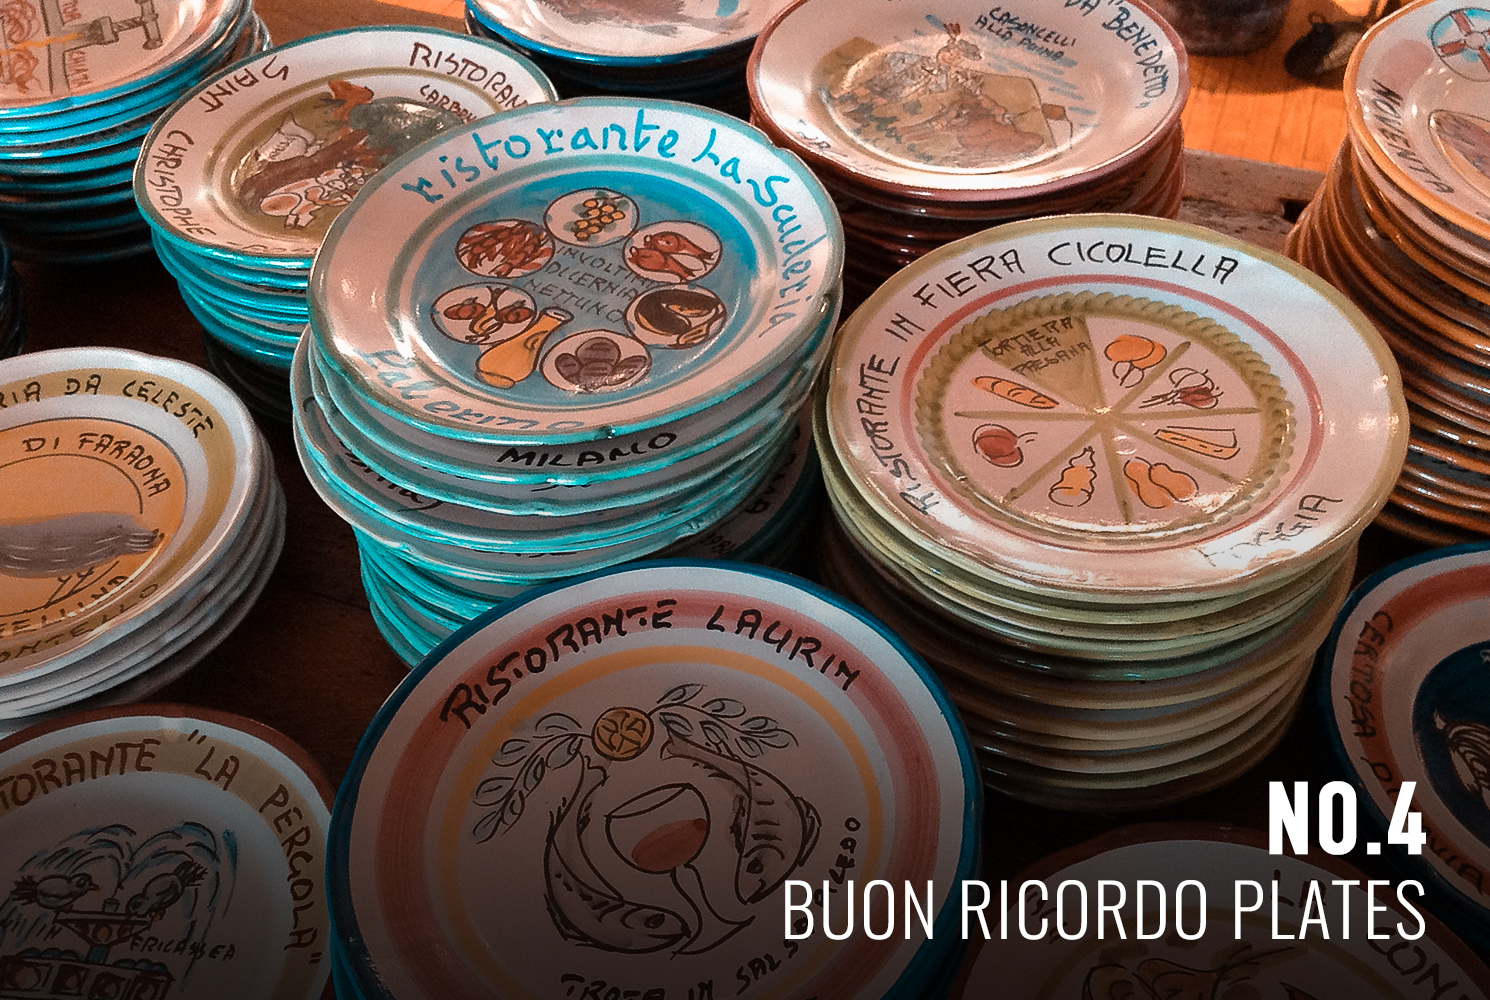 Plates of Buon Ricordo Restaurants